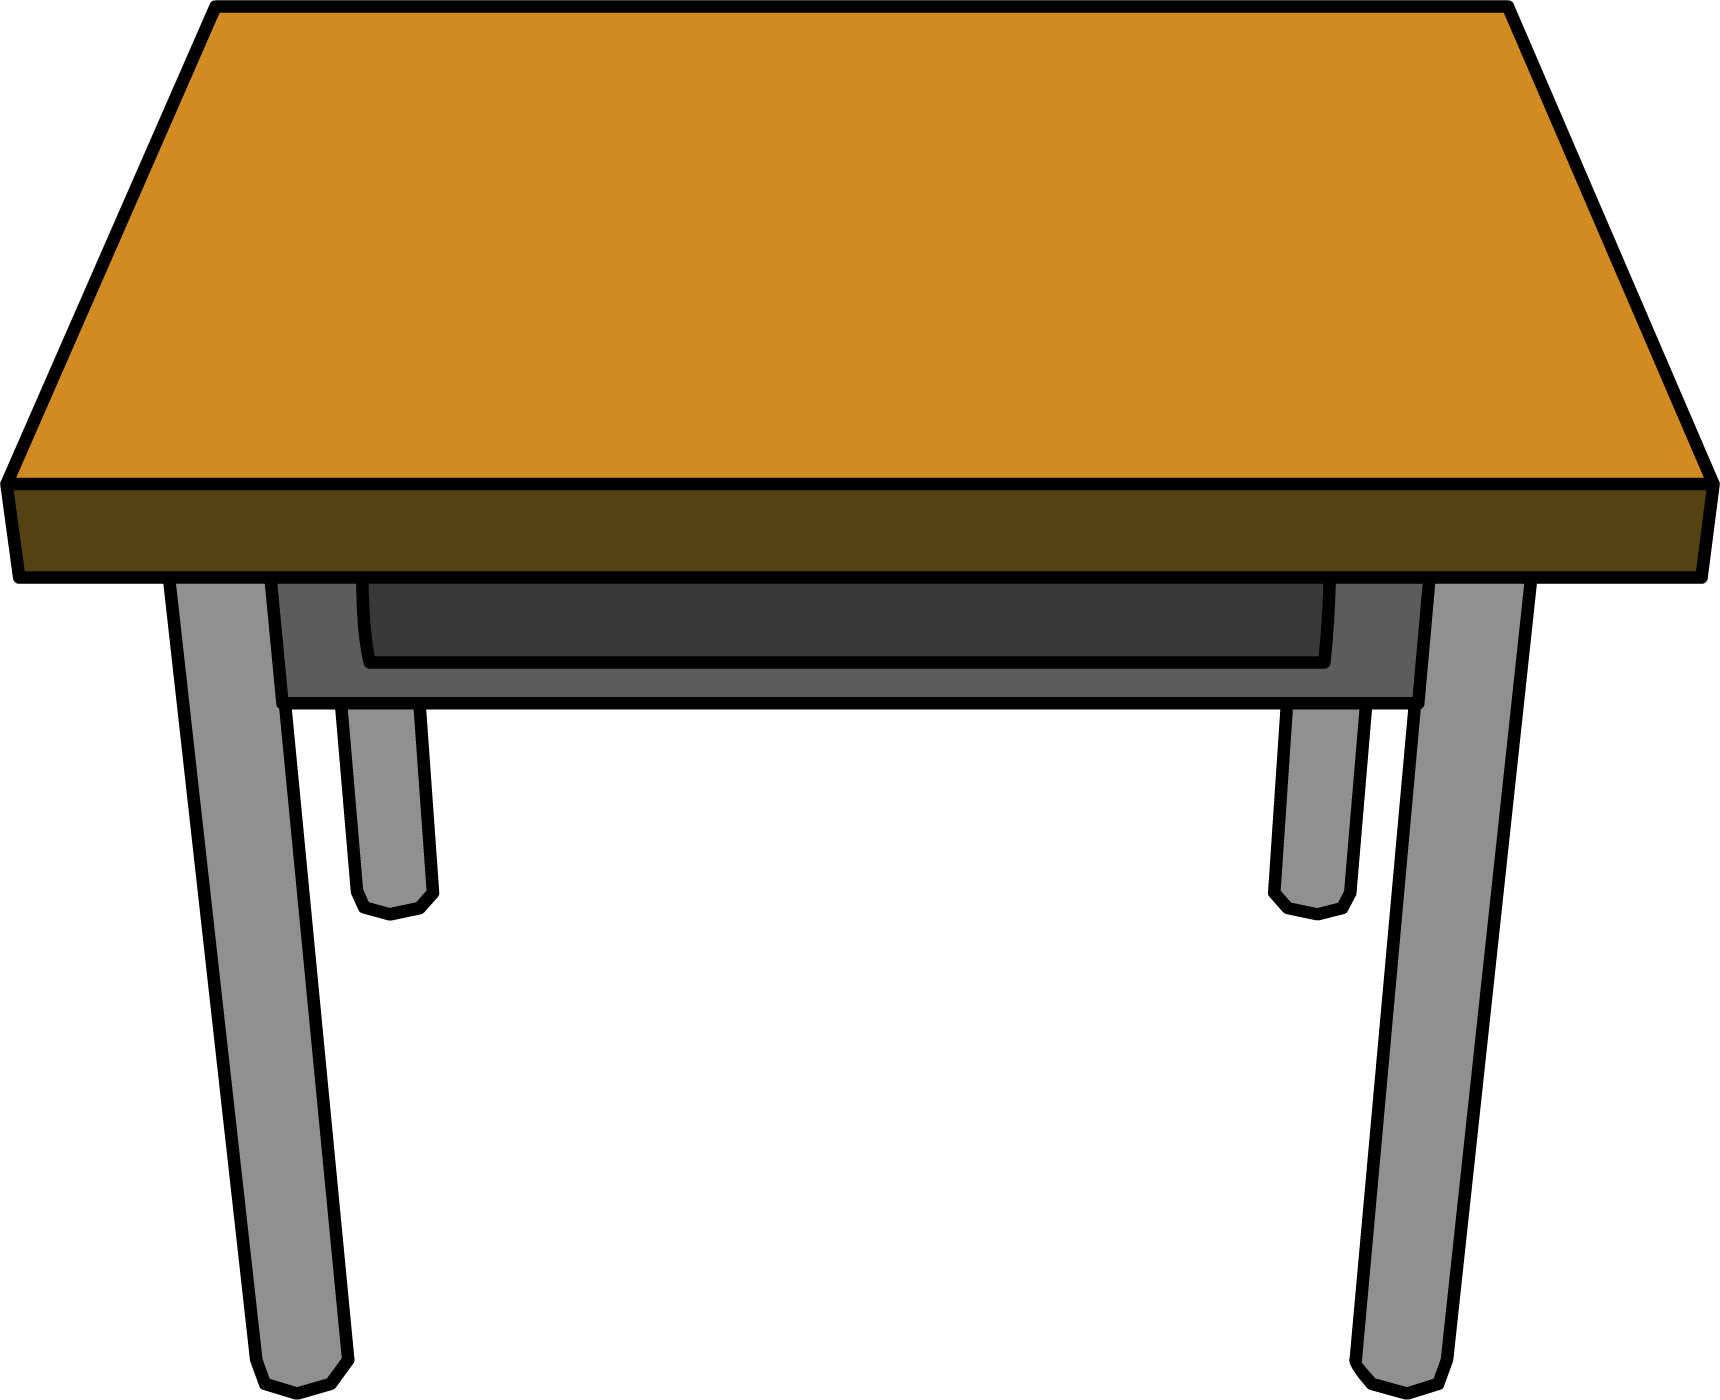 Desk clipart classroom.  collection of transparent